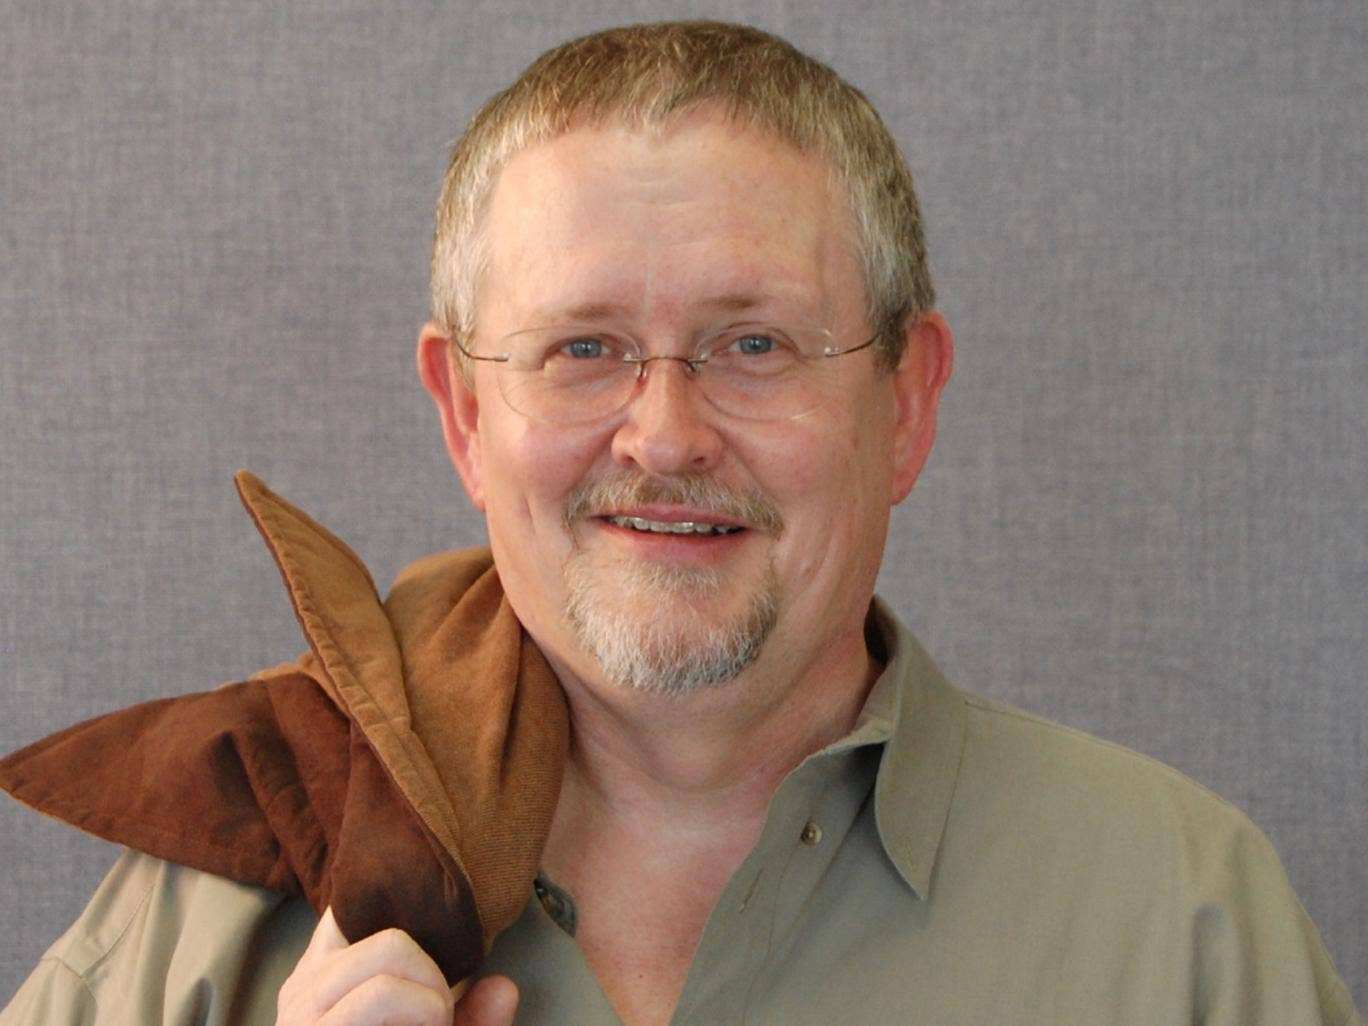 The novelist, Orson Scott Card, has established himself as a leading opponent of same-sex marriage in the US and has even been quoted calling for homosexuality to be made illegal